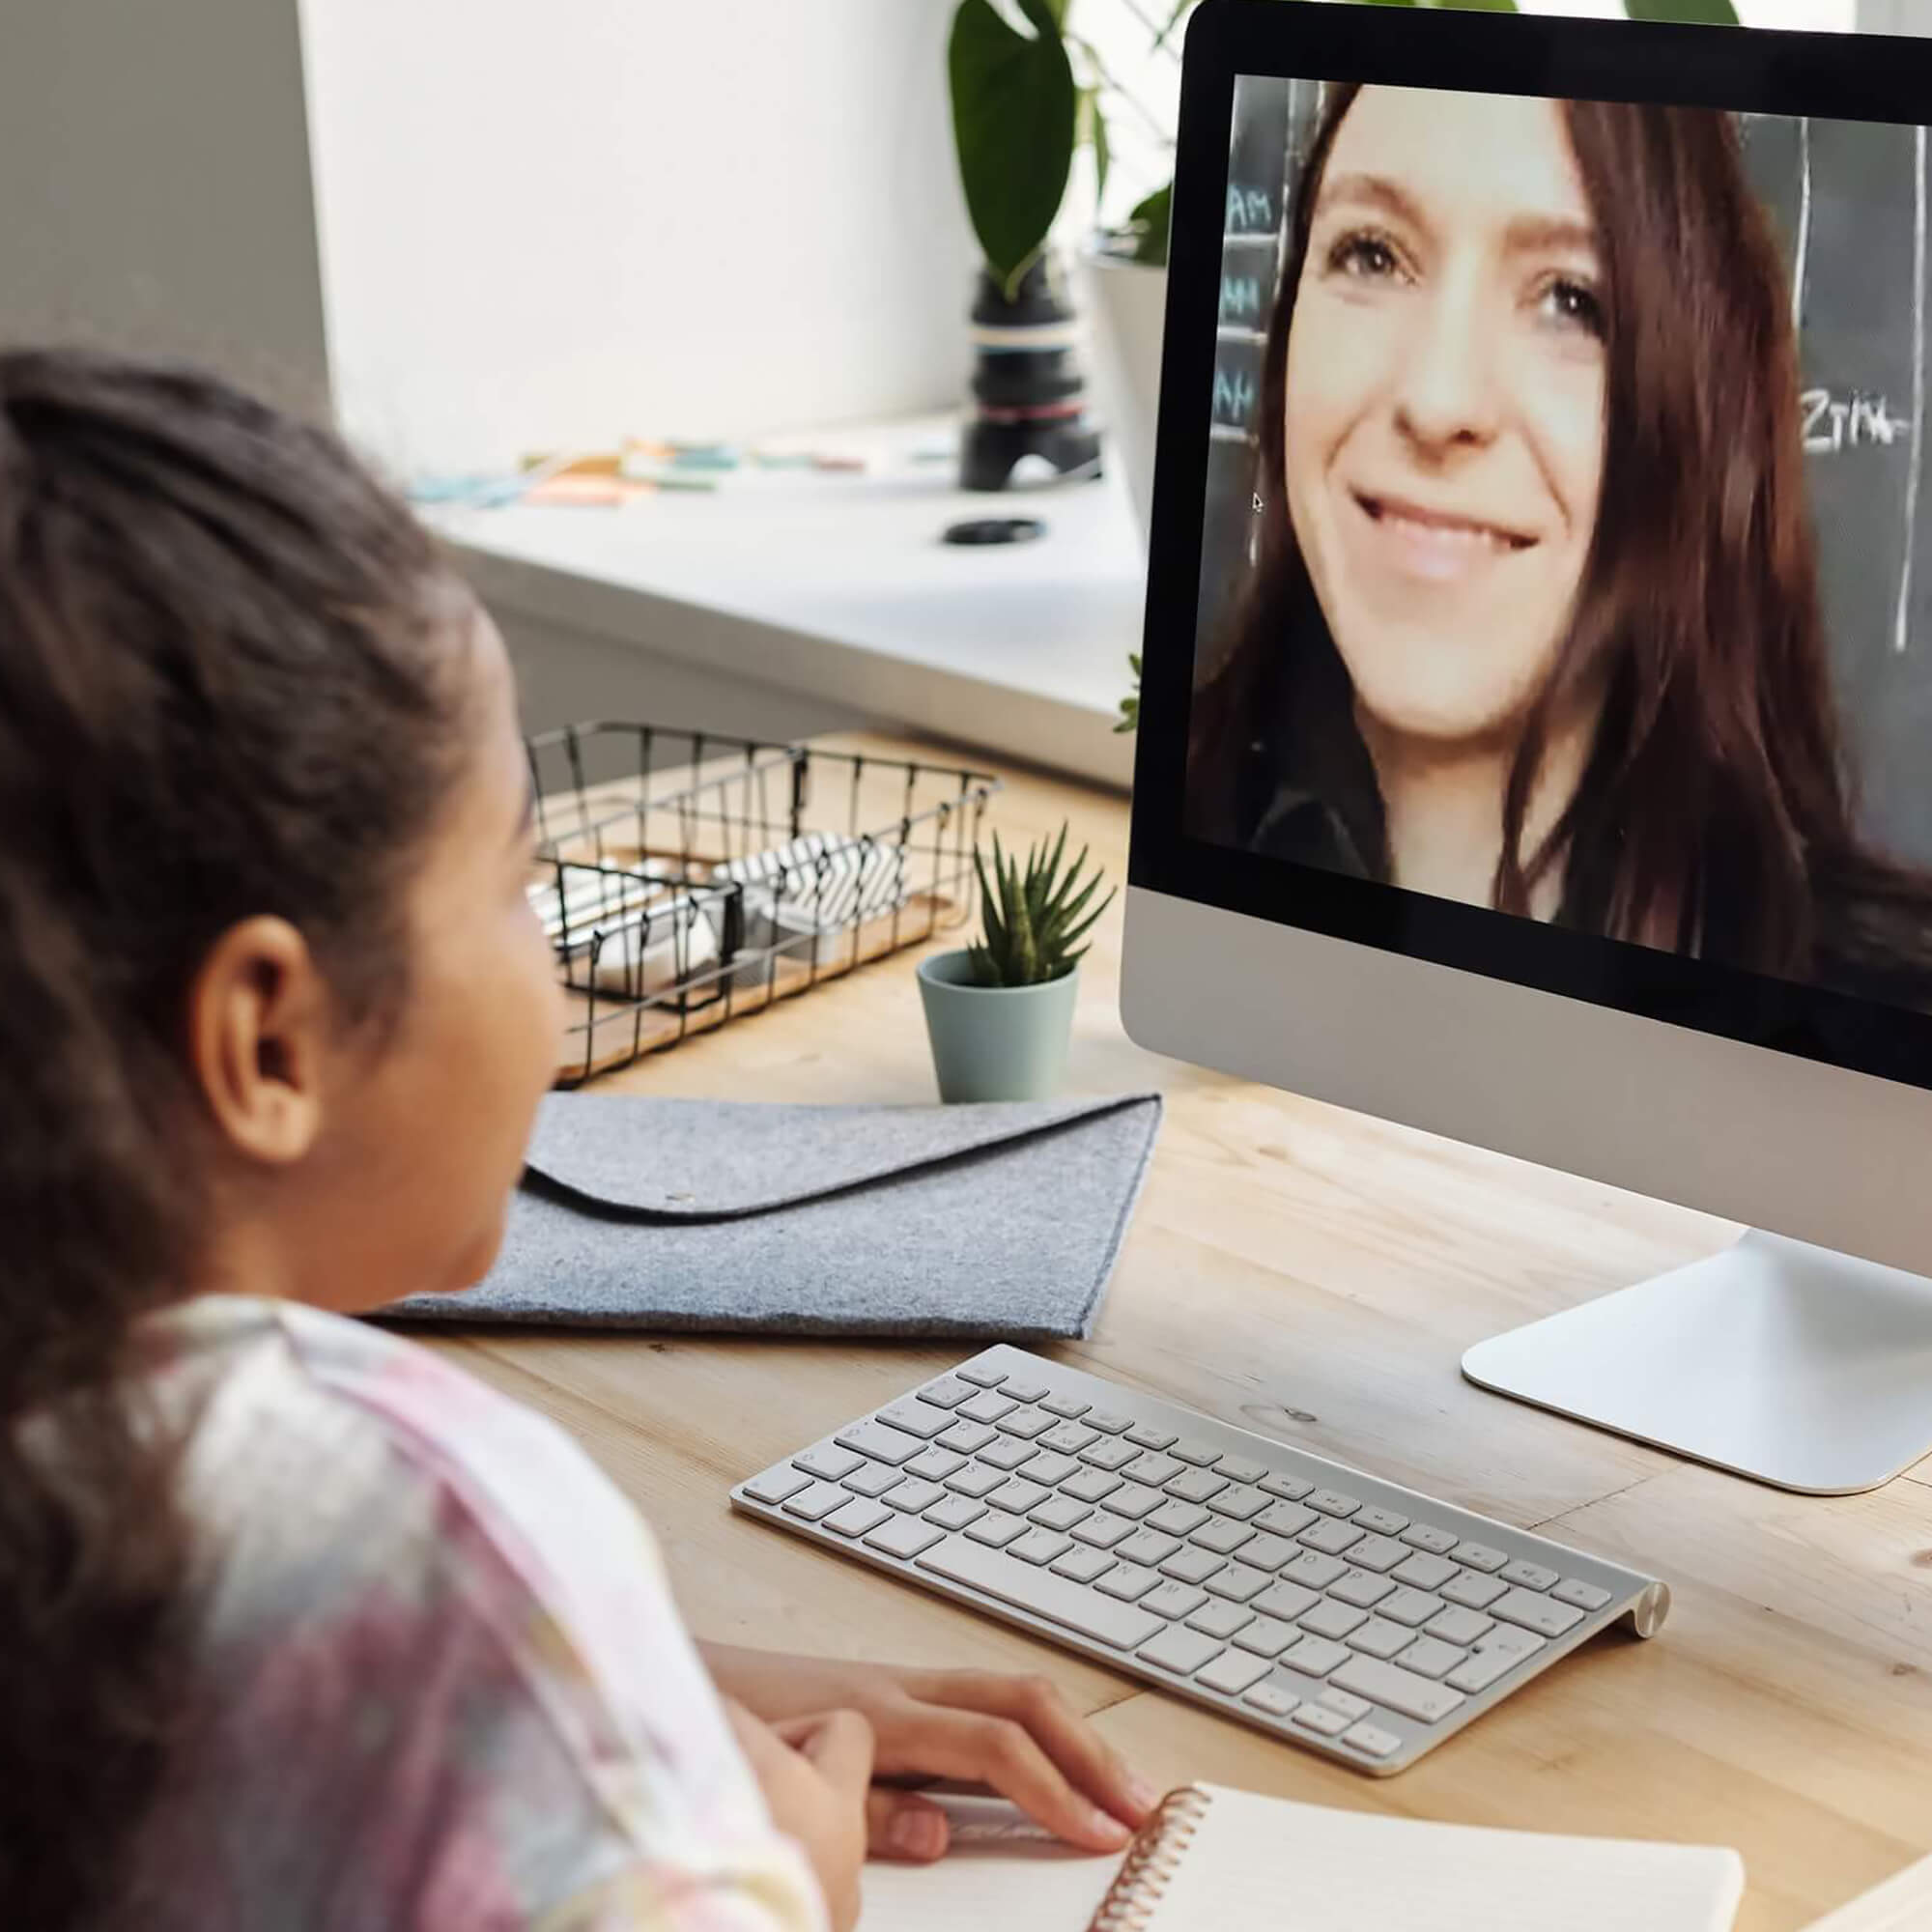 Person sitting at table looking at a computer monitor, talking to a person on the screen.